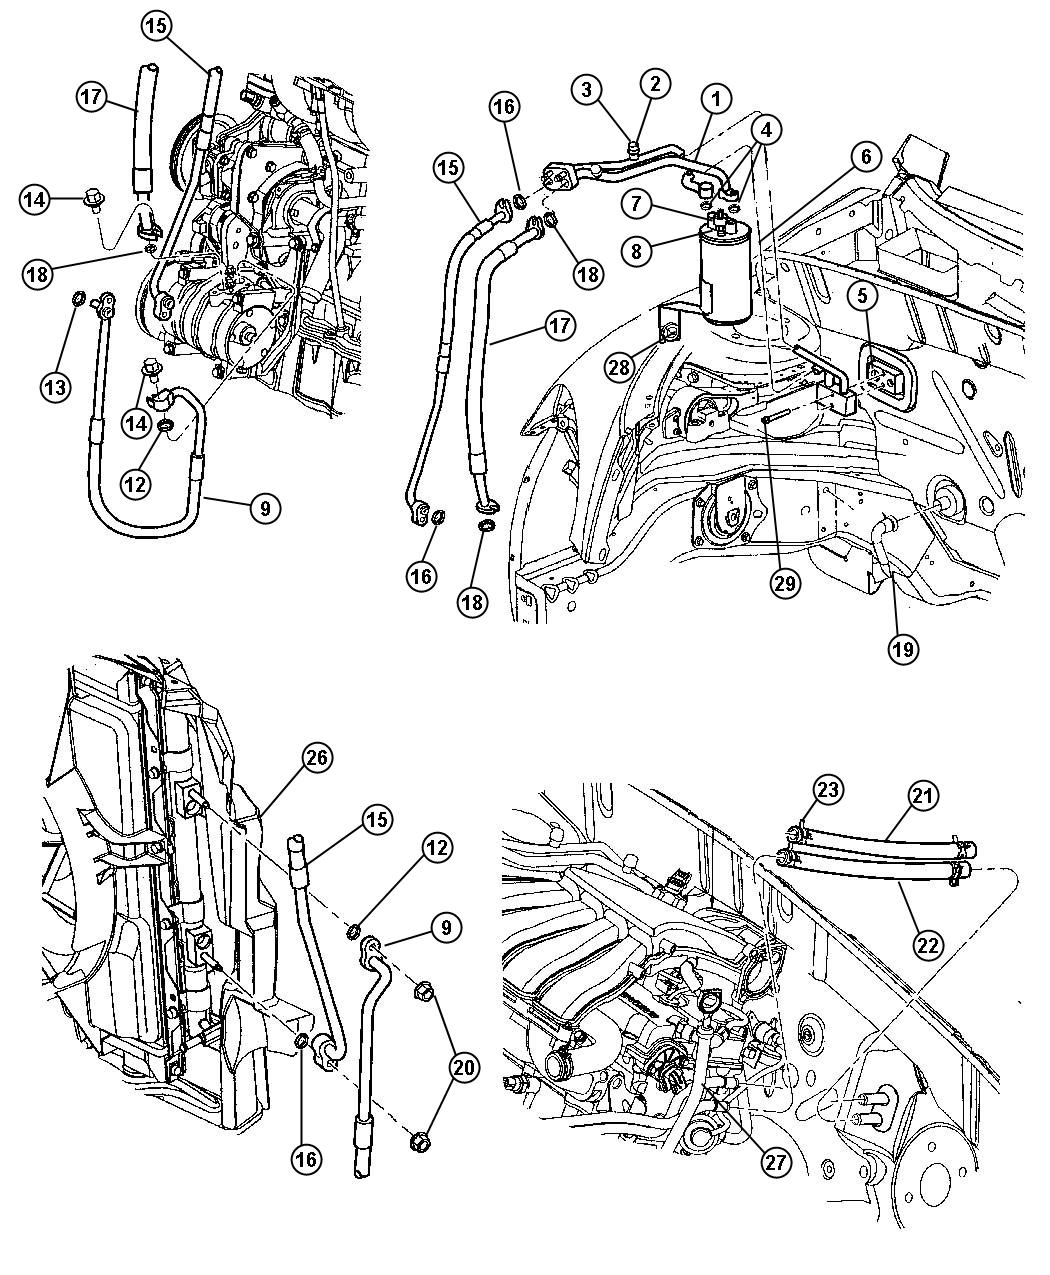 Chevy Cruze 1 8 Engine Sensor Diagram Furthermore Small Block Chevy